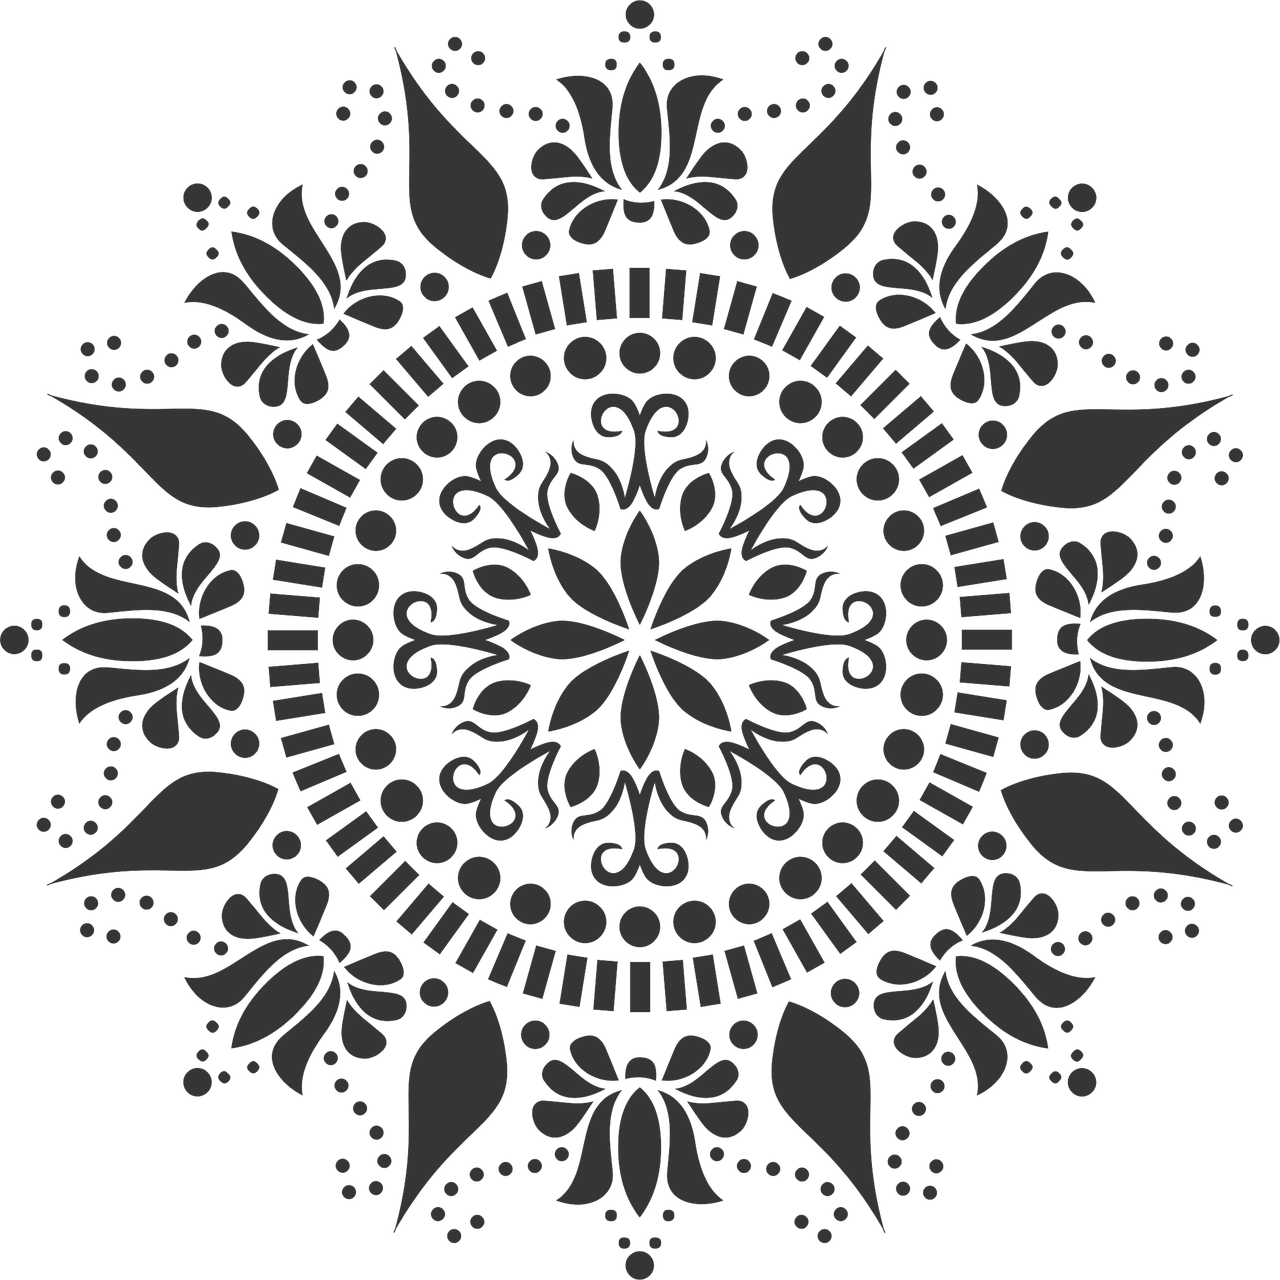 Mandala stencil png. Lotus easy and simple